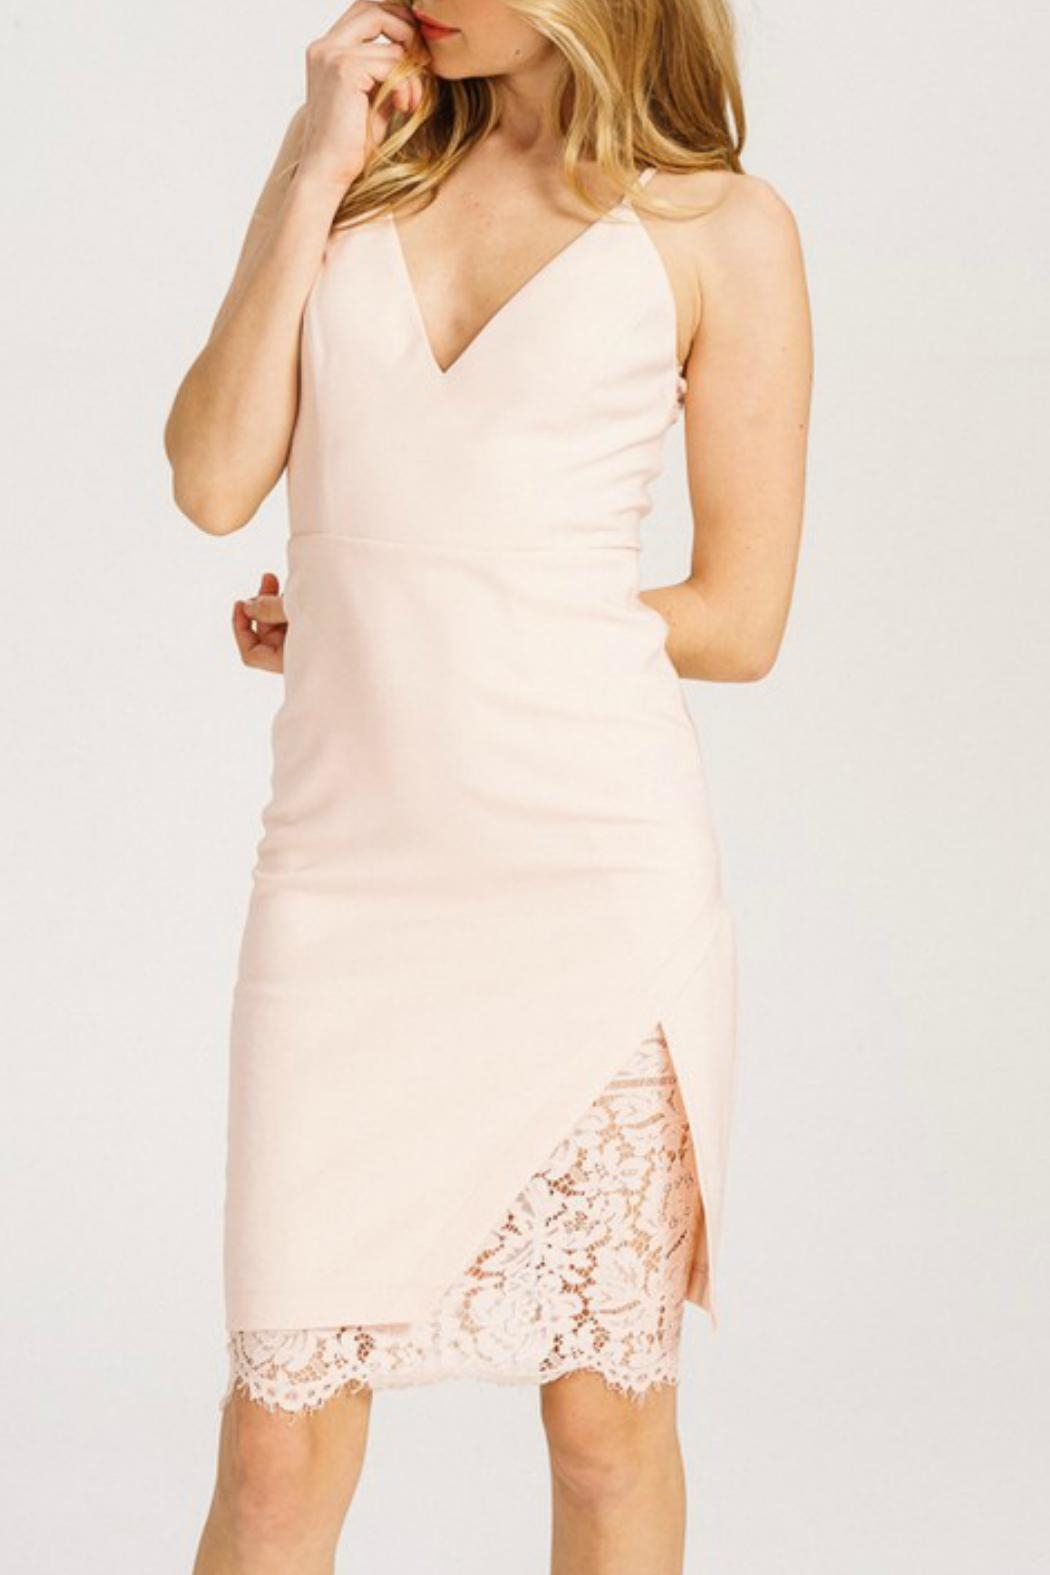 Main Strip Lace Bodycon Dress - Front Full Image